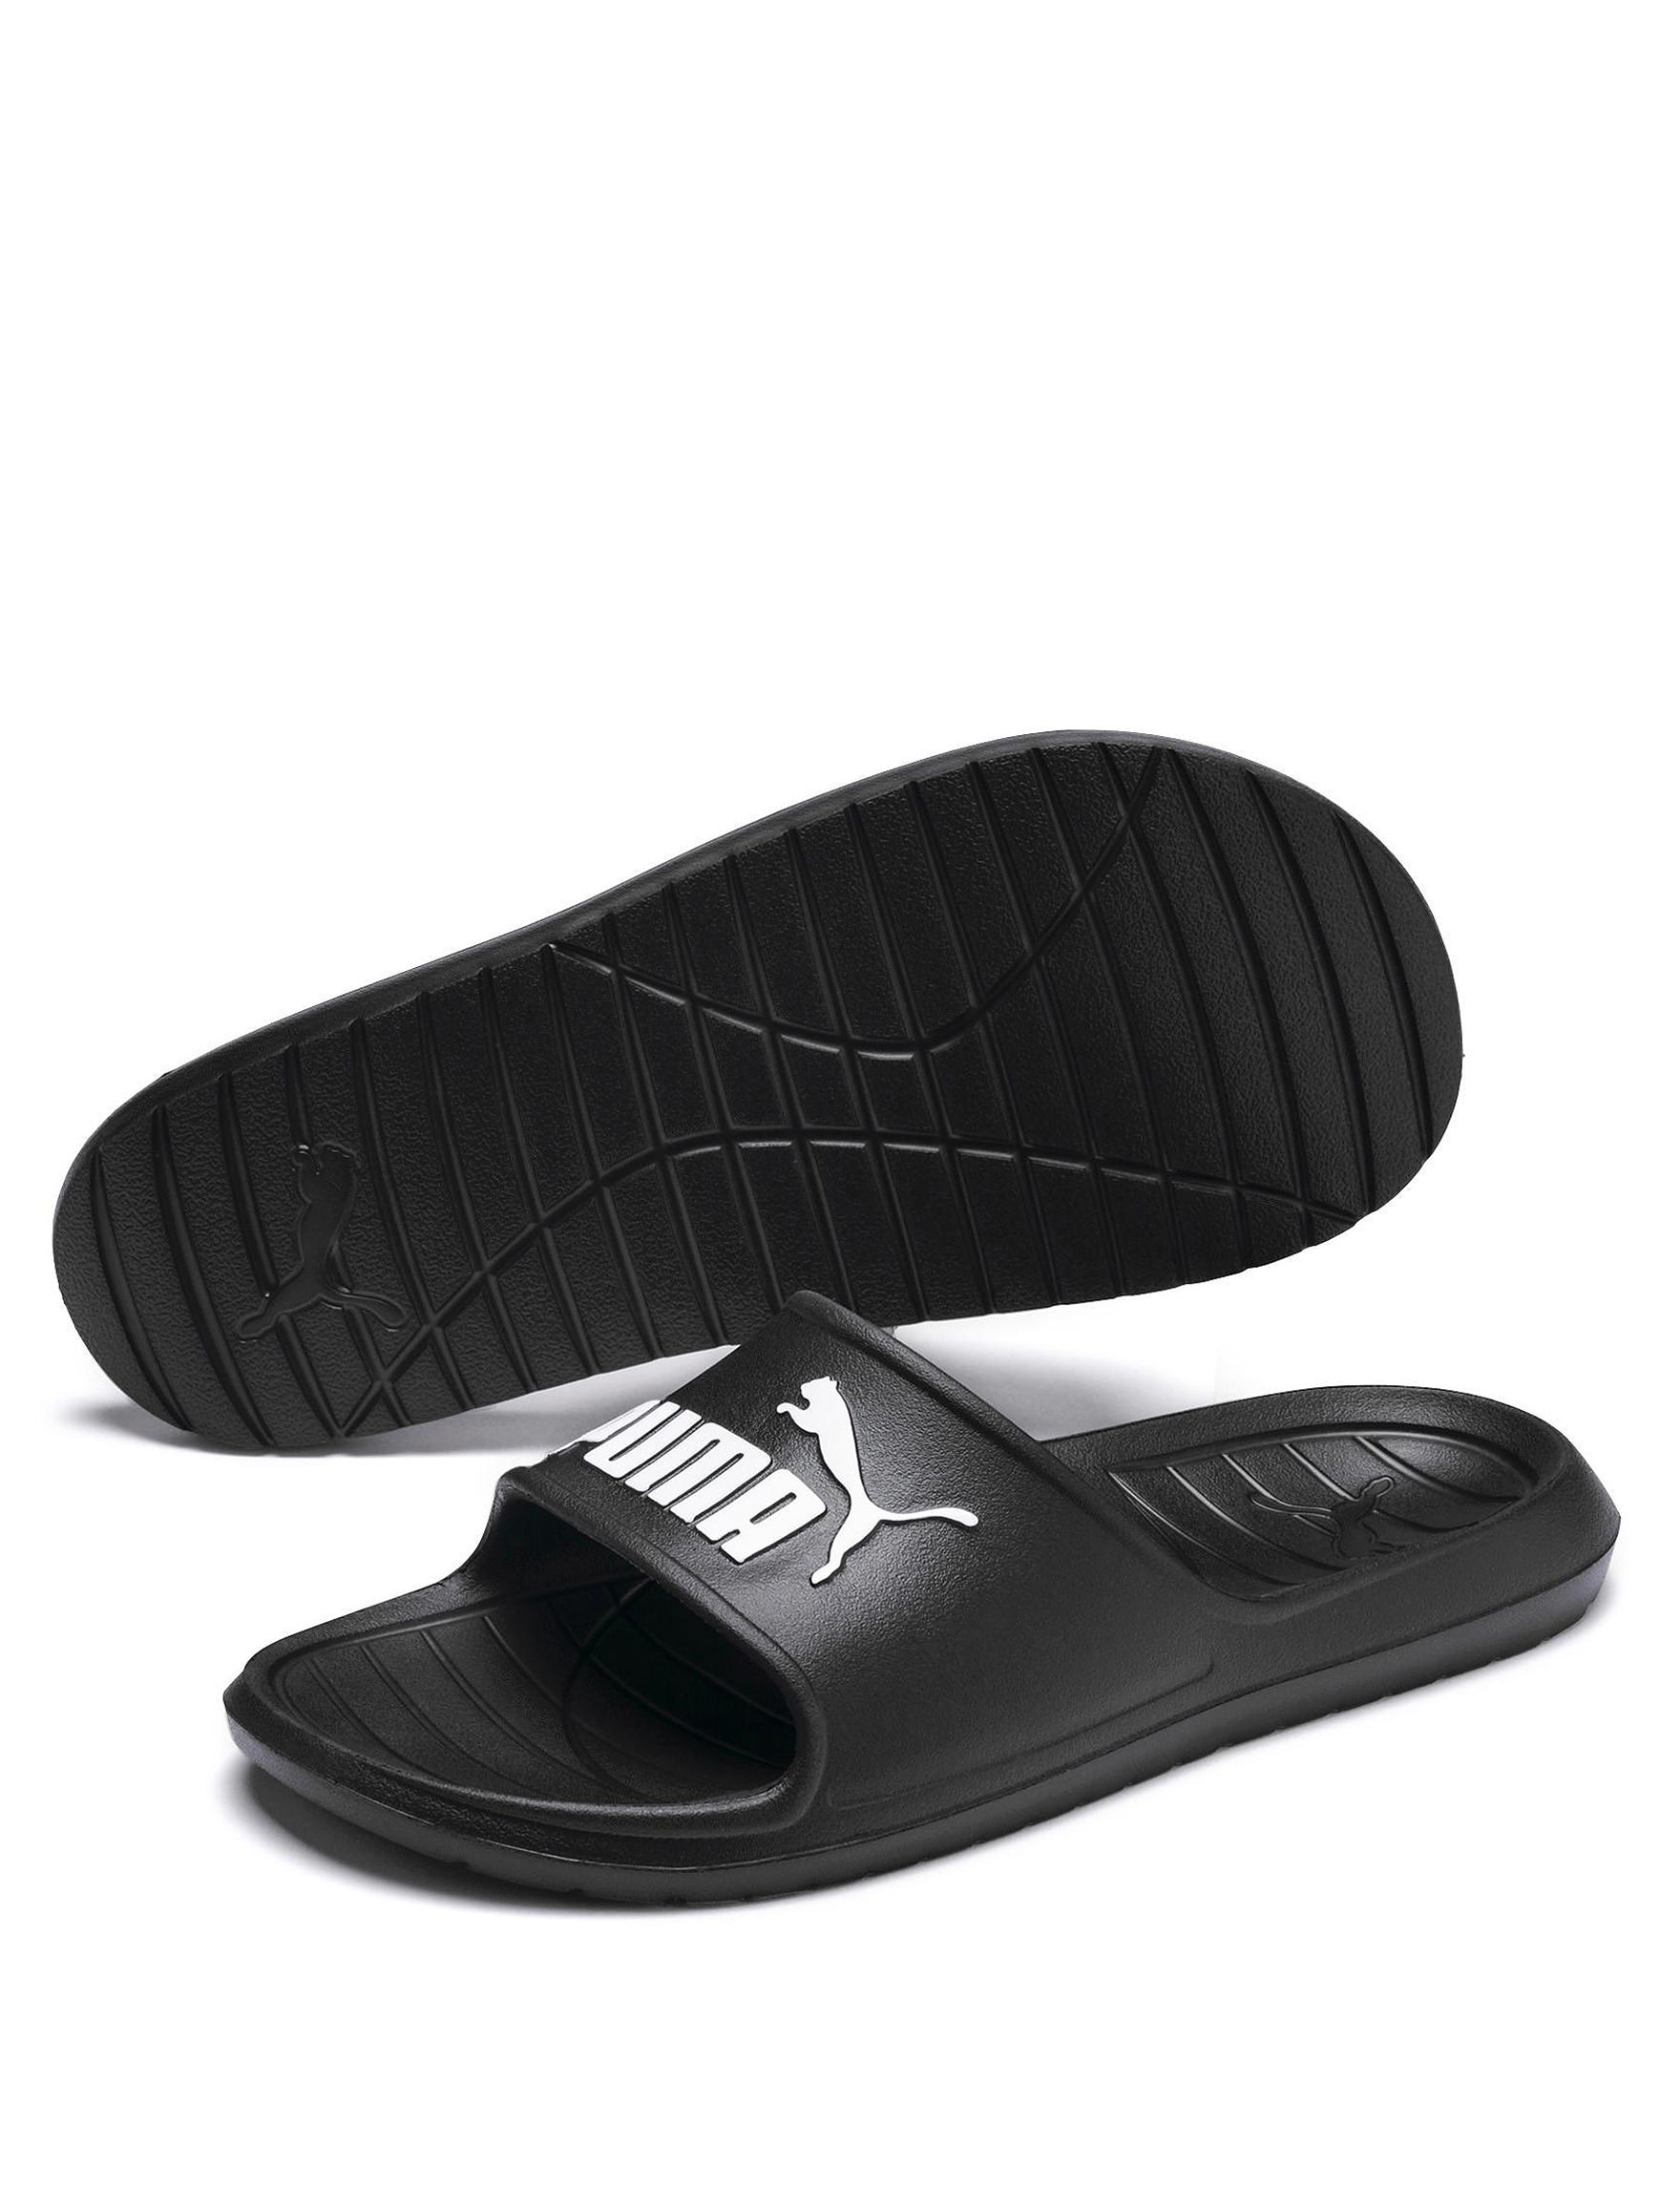 Puma Black / White Slide Sandals